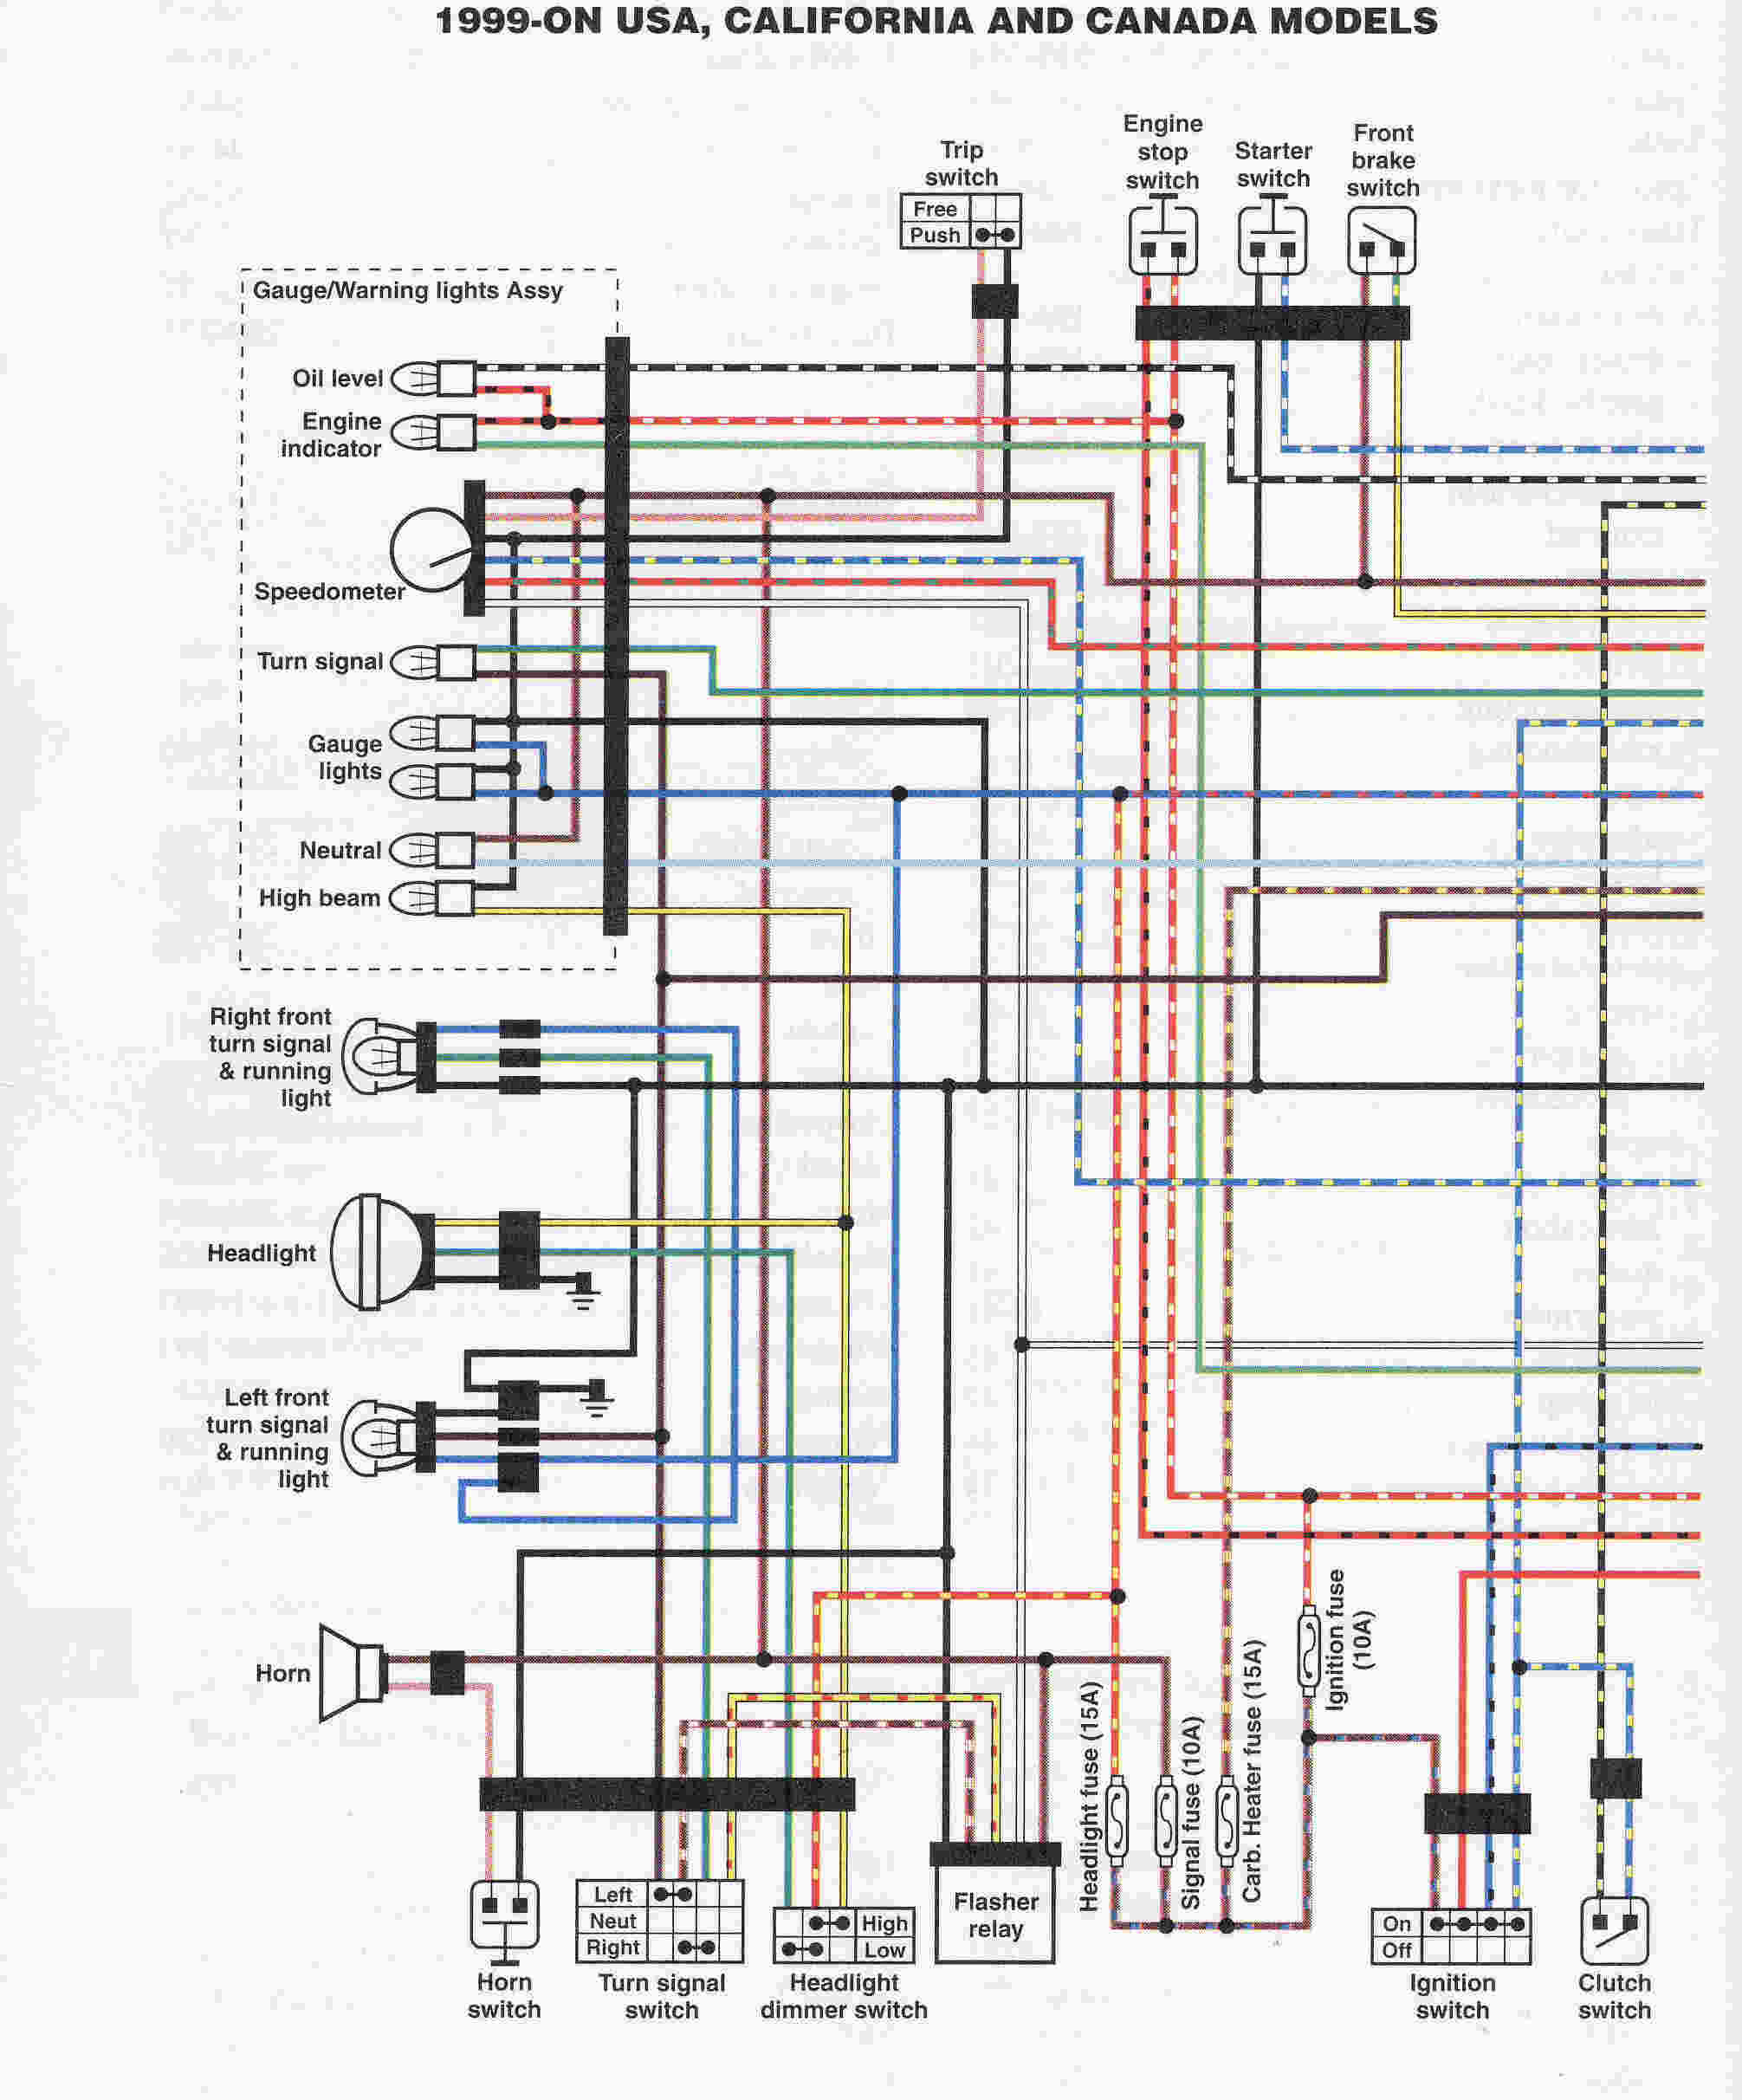 Wiring US 01 radio wiring diagrams yamaha wiring diagrams instruction 2004 Yamaha R6 Wiring-Diagram at edmiracle.co